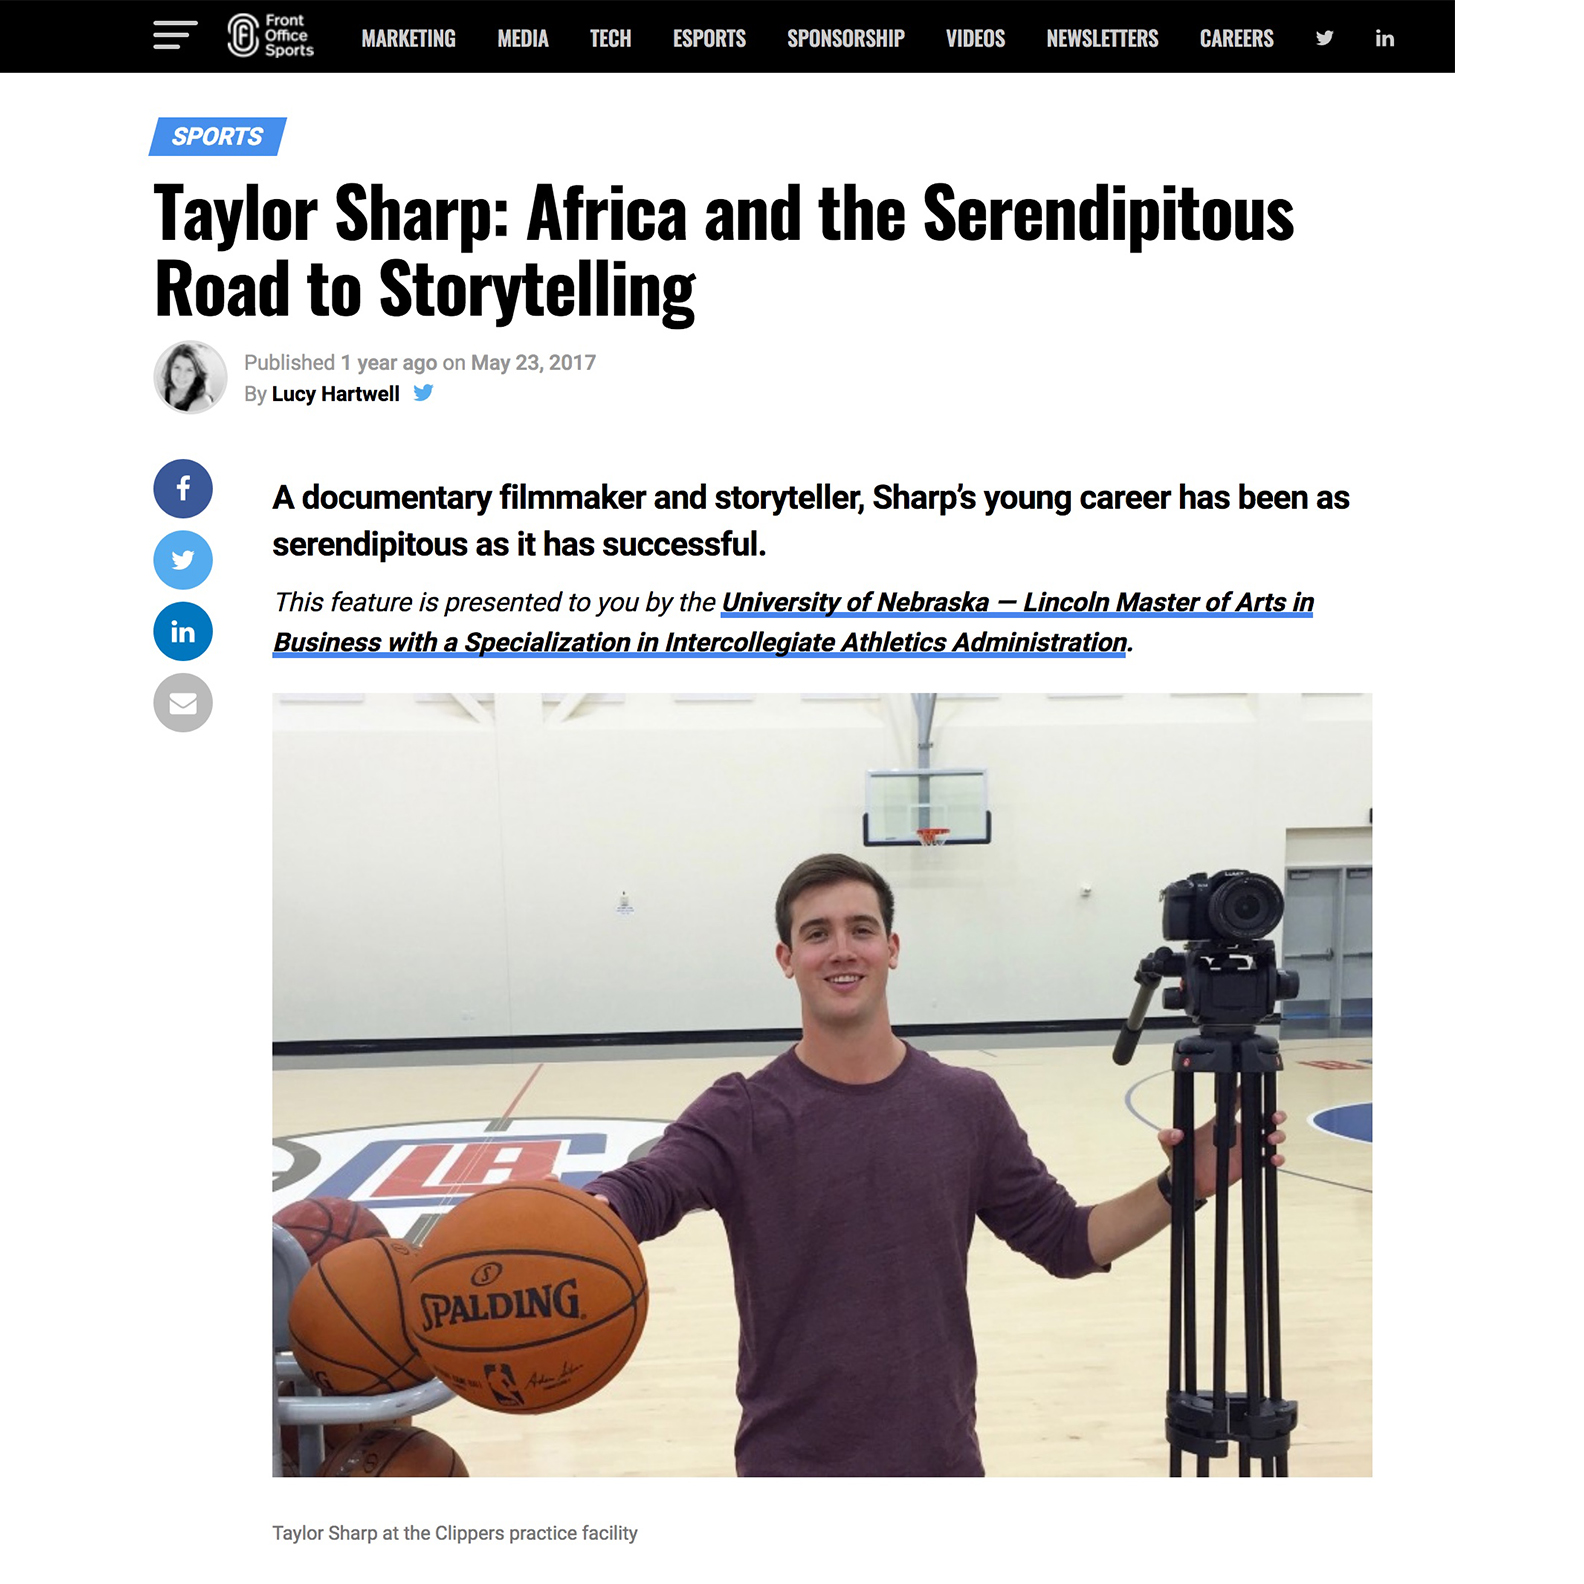 Front Office Sports   Article - Taylor Sharp: Africa and the Serendipitous Road to Storytelling. A documentary filmmaker and storyteller, Sharp's young career has been as serendipitous as it has successful.